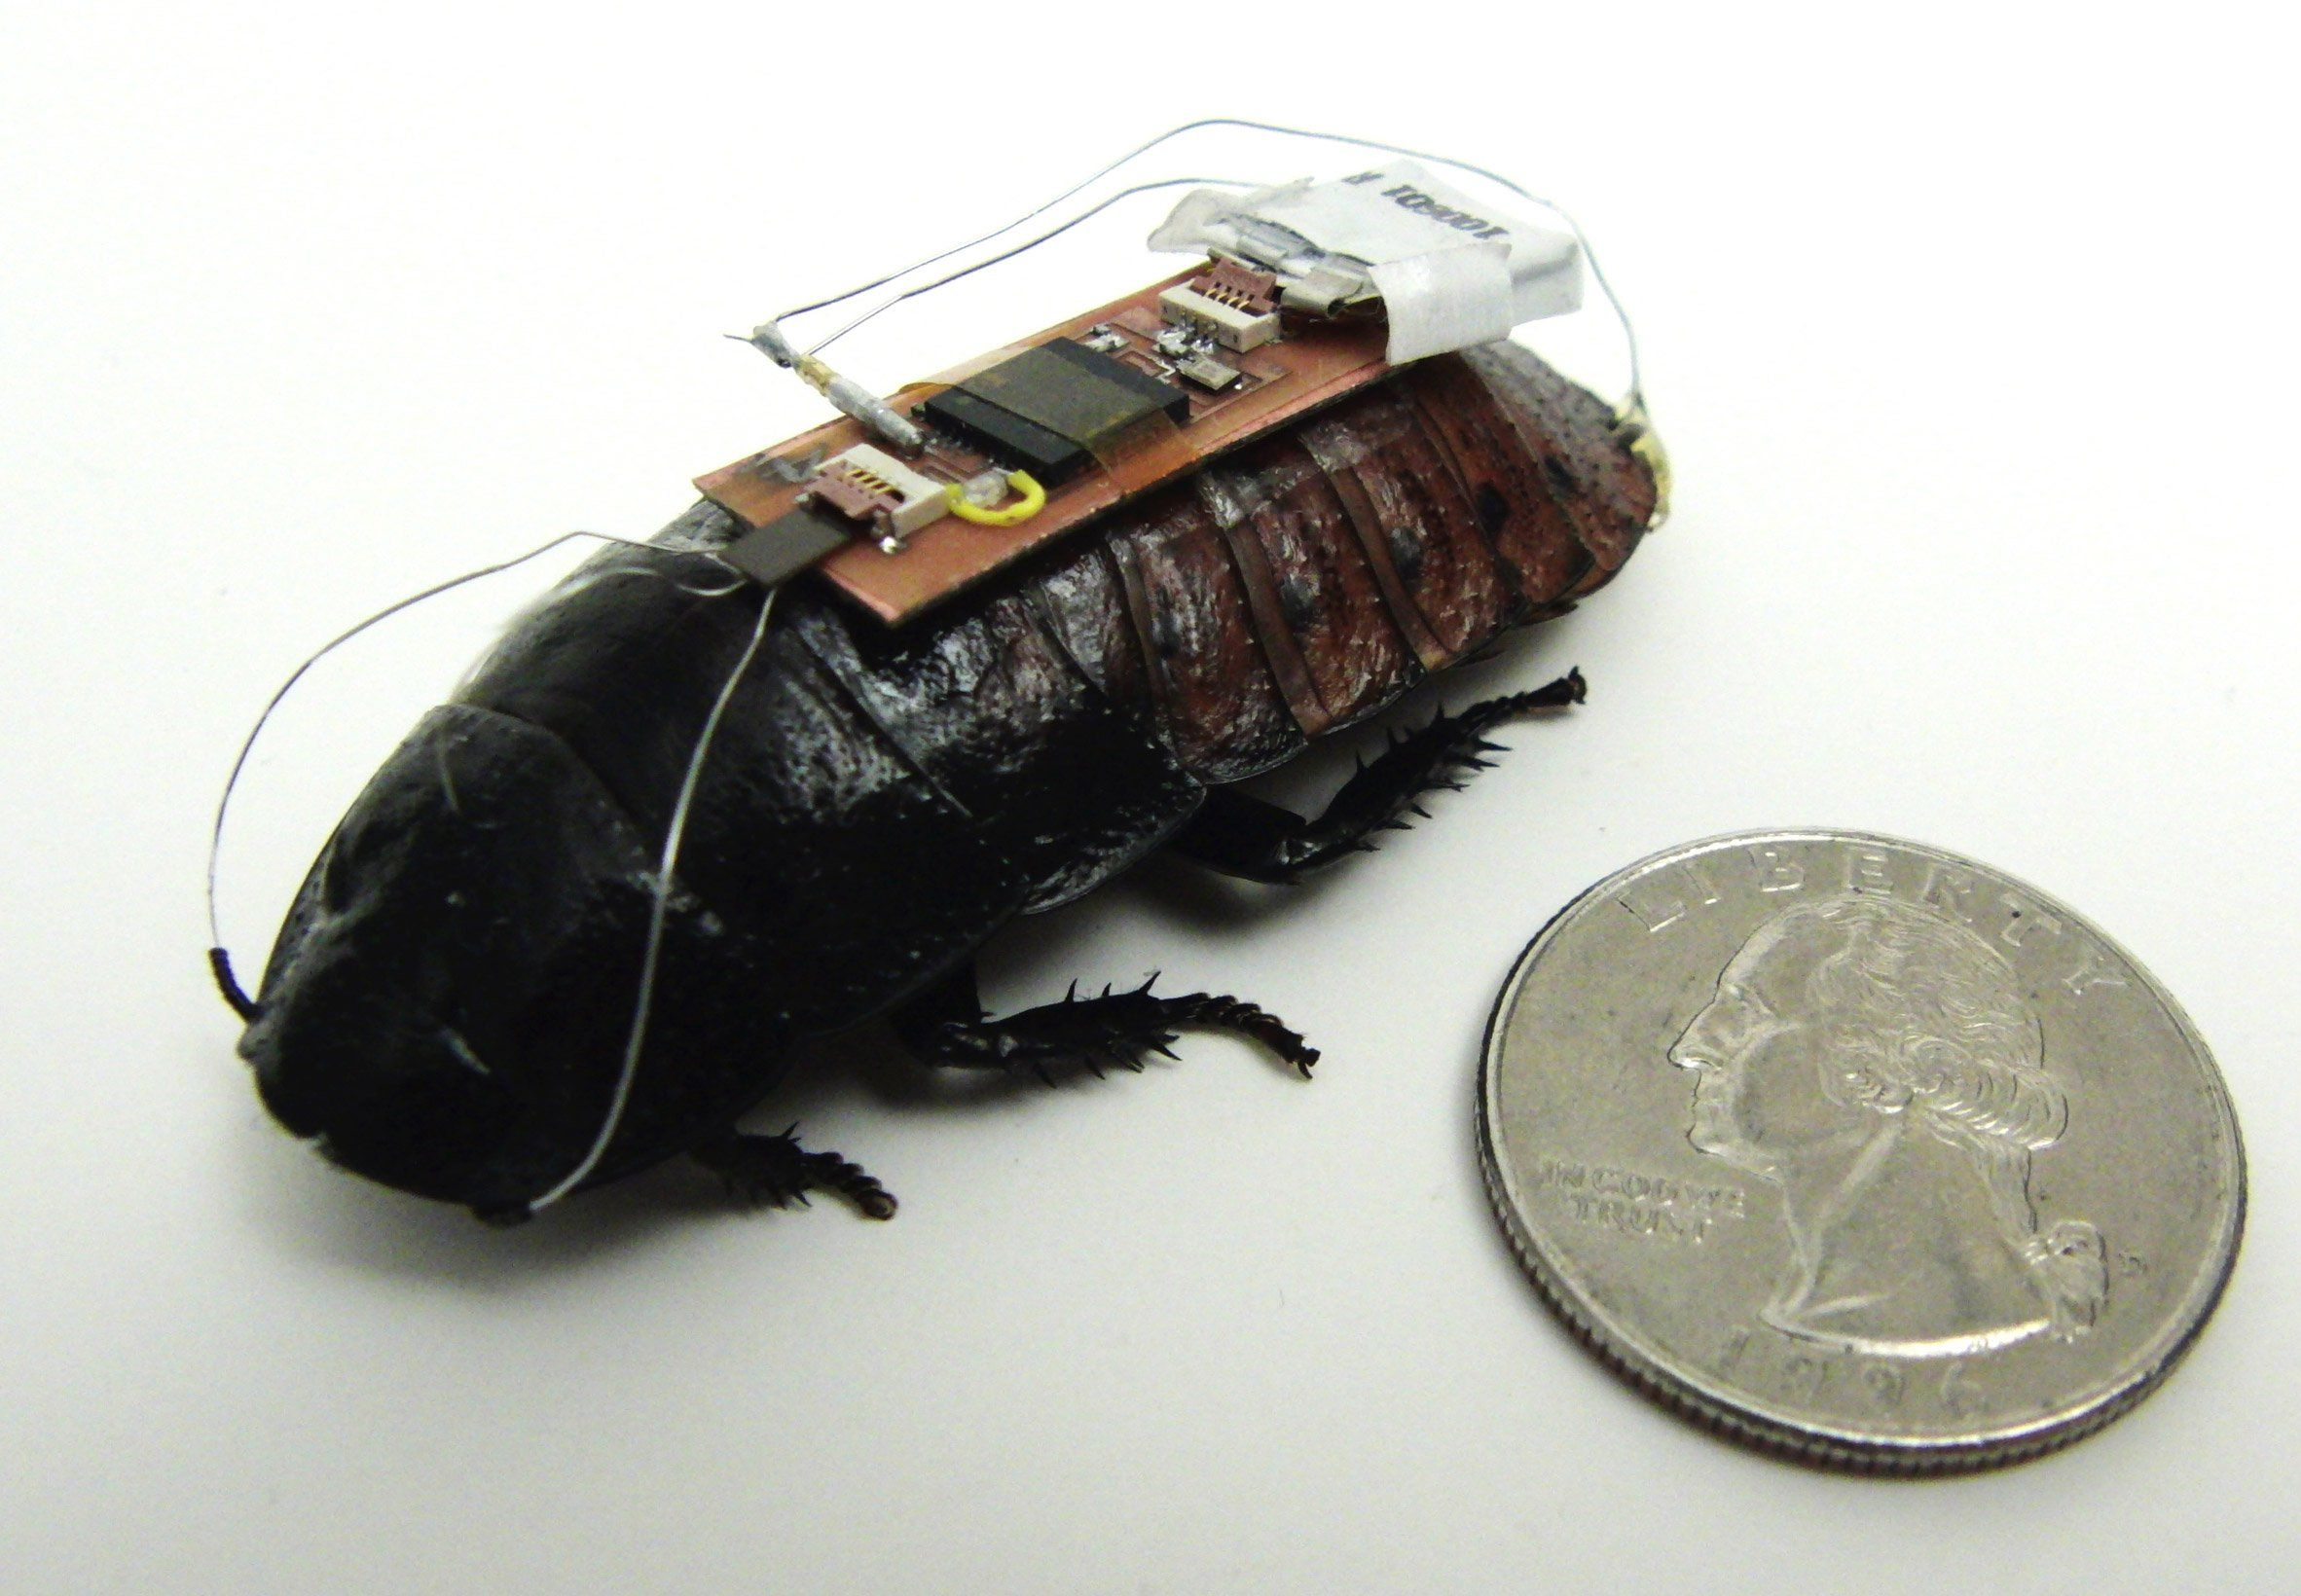 Cyborg insects map out disaster zones